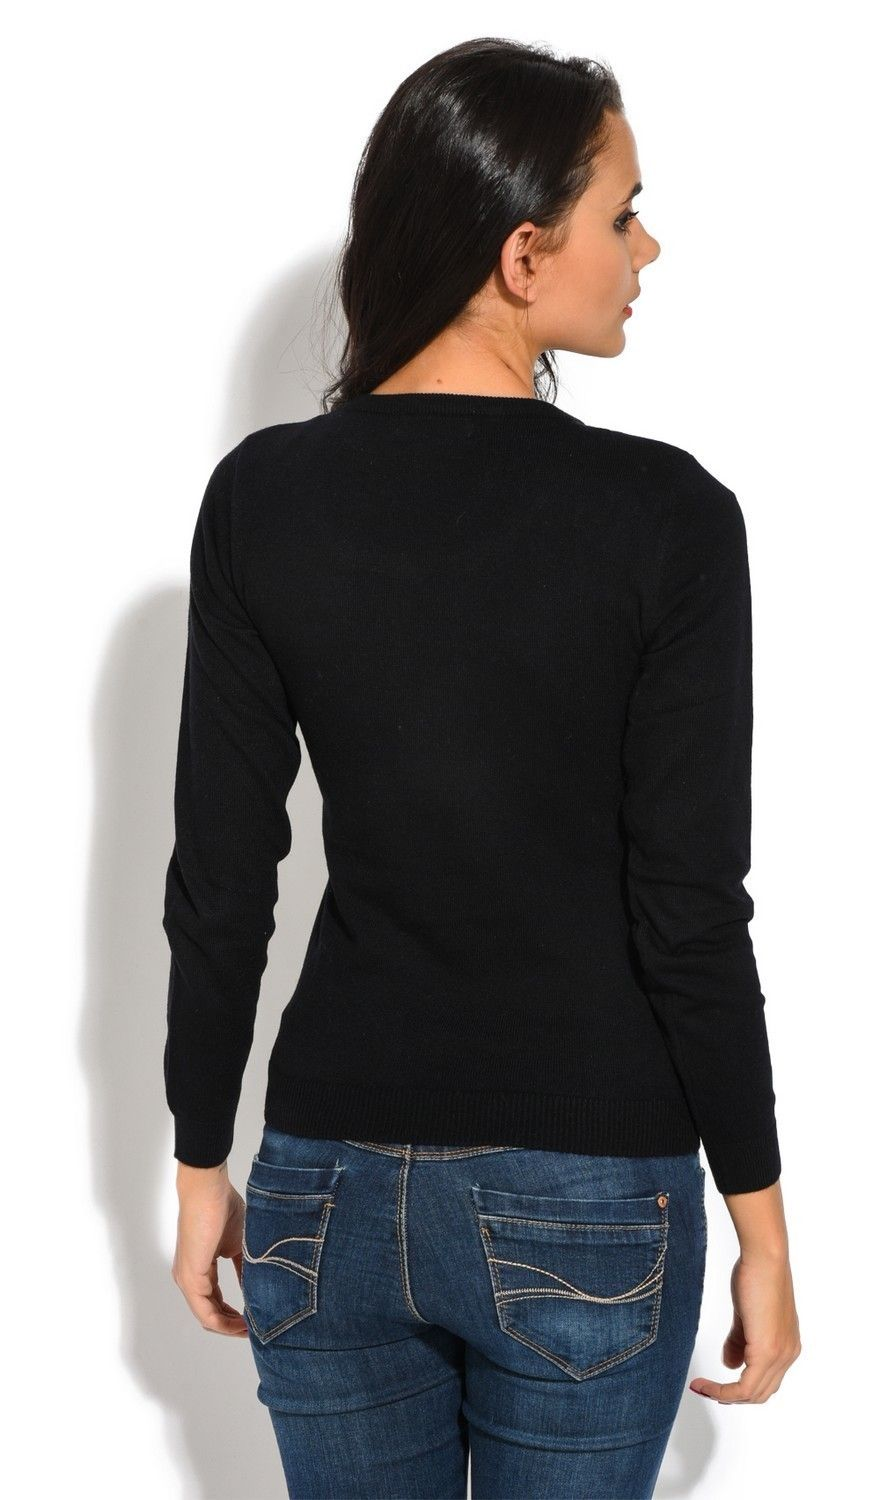 C&JO Round Neck Sweater with Shoulder Button Detail in Black